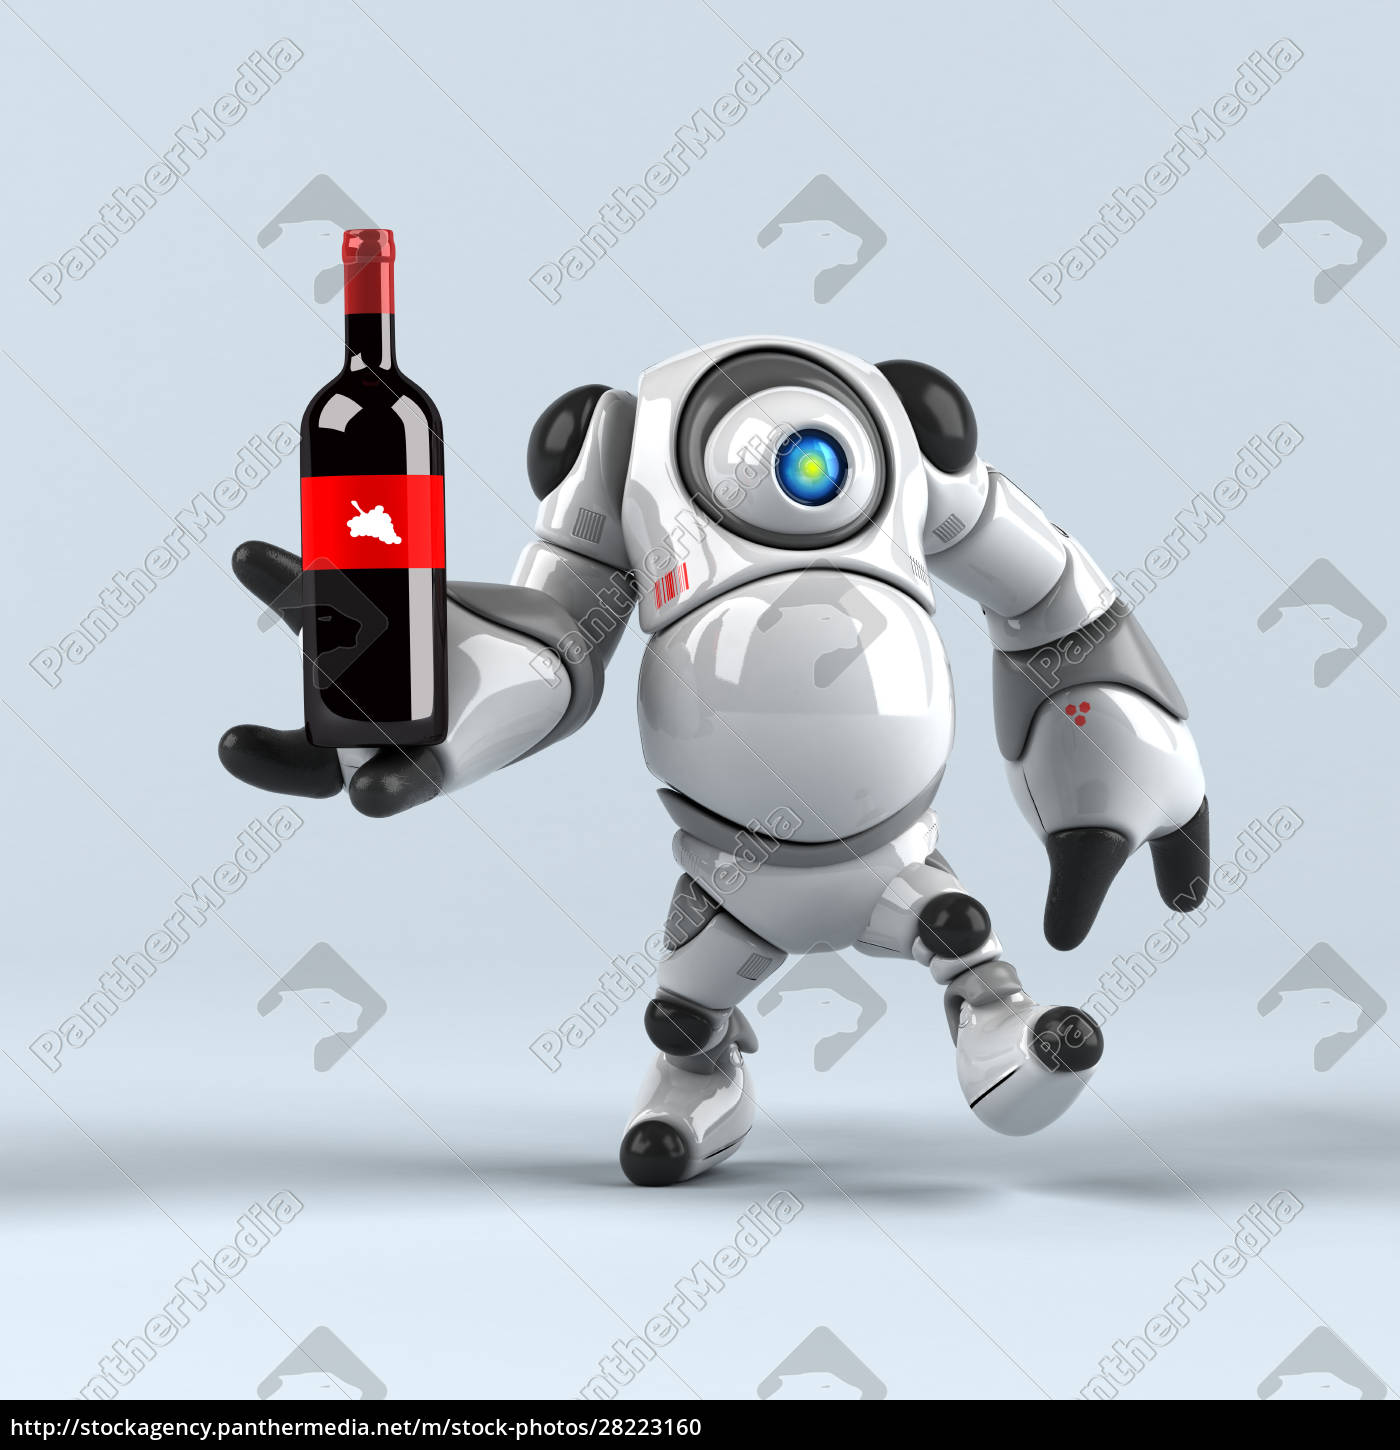 big, robot, -, 3d, illustration - 28223160